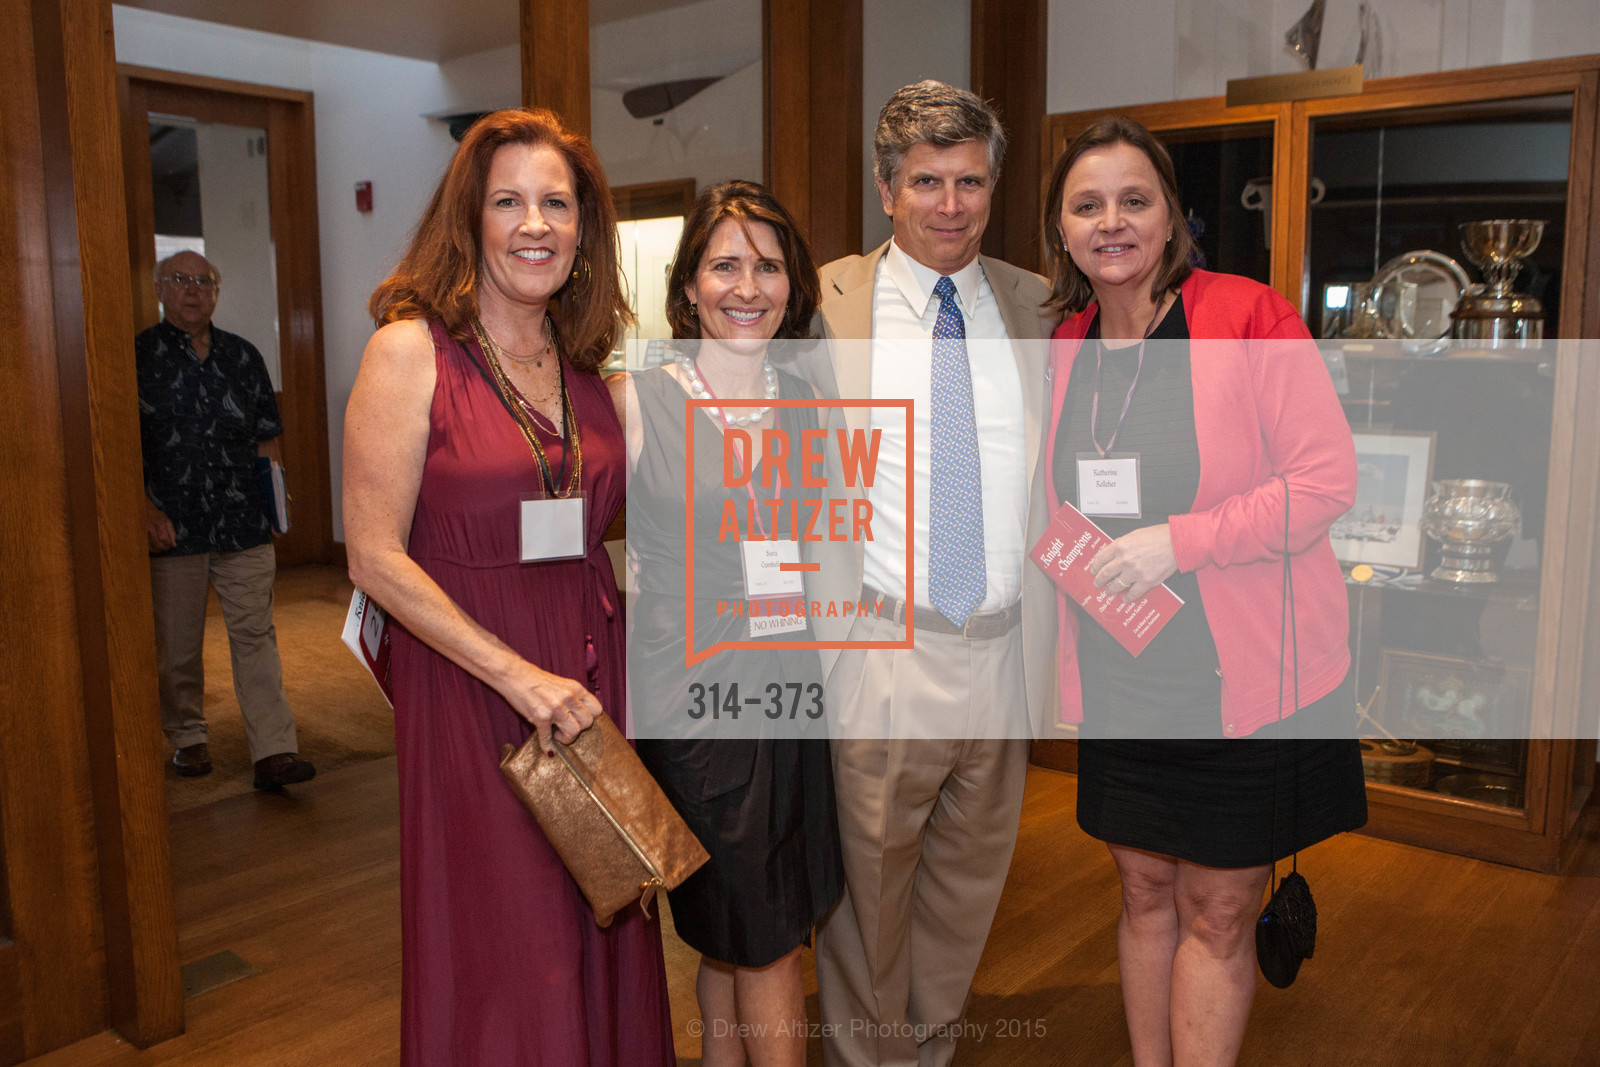 Theresa Baum, Sara Cumbelich, Brian Kelleher, Kathy Kelleher, Sovereign Order of Malta Presents: A Knight for Champions, 7th Annual Silver Chalice Awards Dinner, St. Francis Yacht Club. 99 Yacht Rd, October 13th, 2015,Drew Altizer, Drew Altizer Photography, full-service agency, private events, San Francisco photographer, photographer california